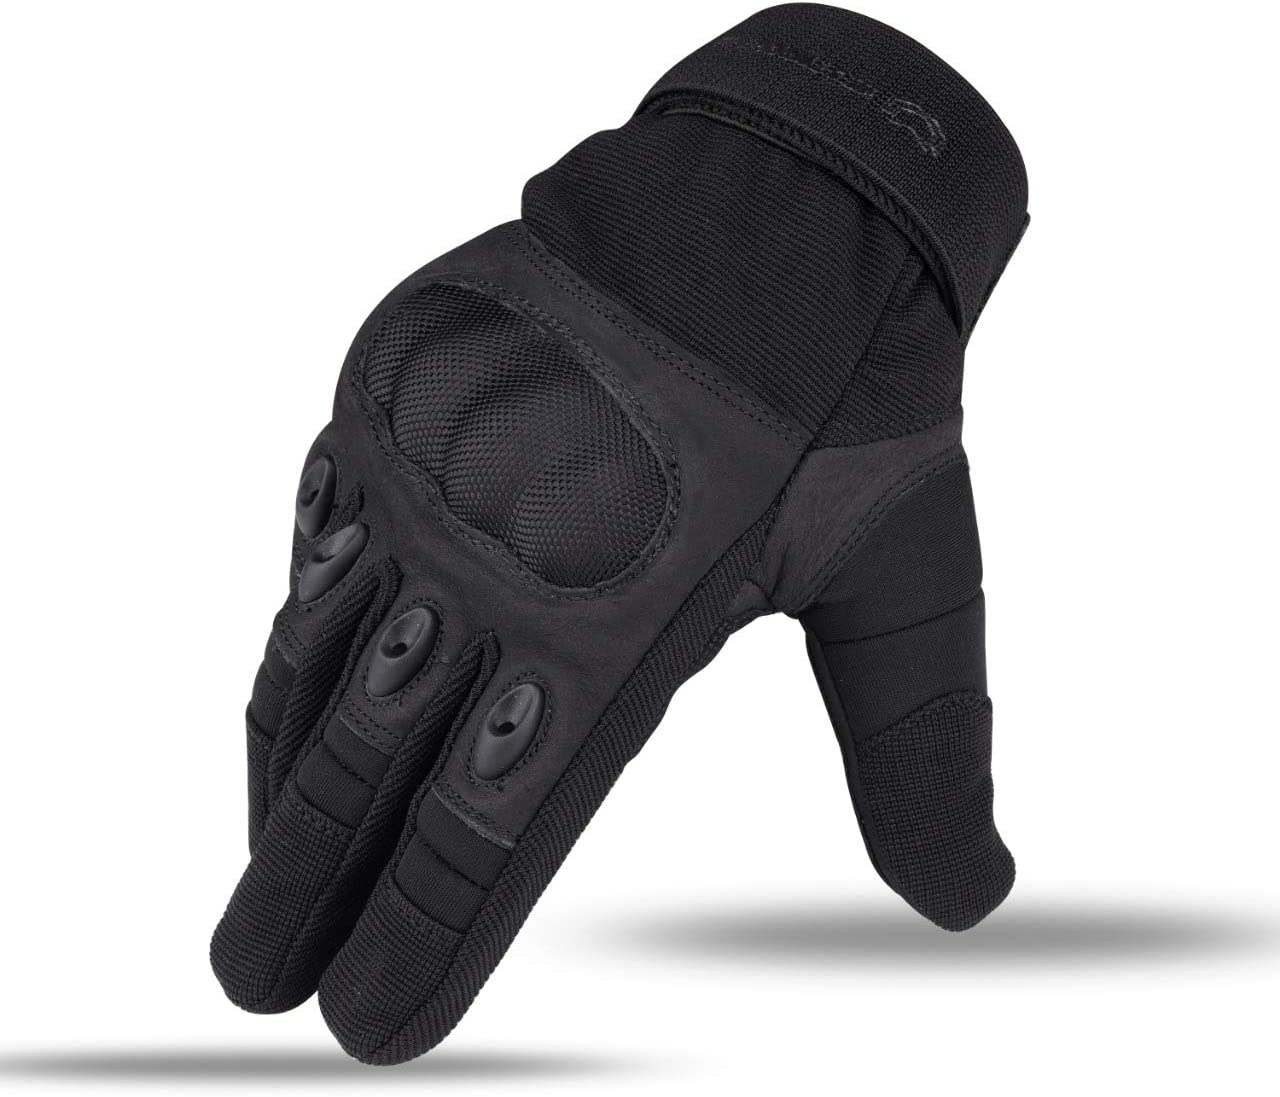 WFX Leather Motorcycle Gloves Hard Knuckle Outdoor Motorbike Street Riding Hiking Camping Touch Screen Full Finger Gloves Large, Black